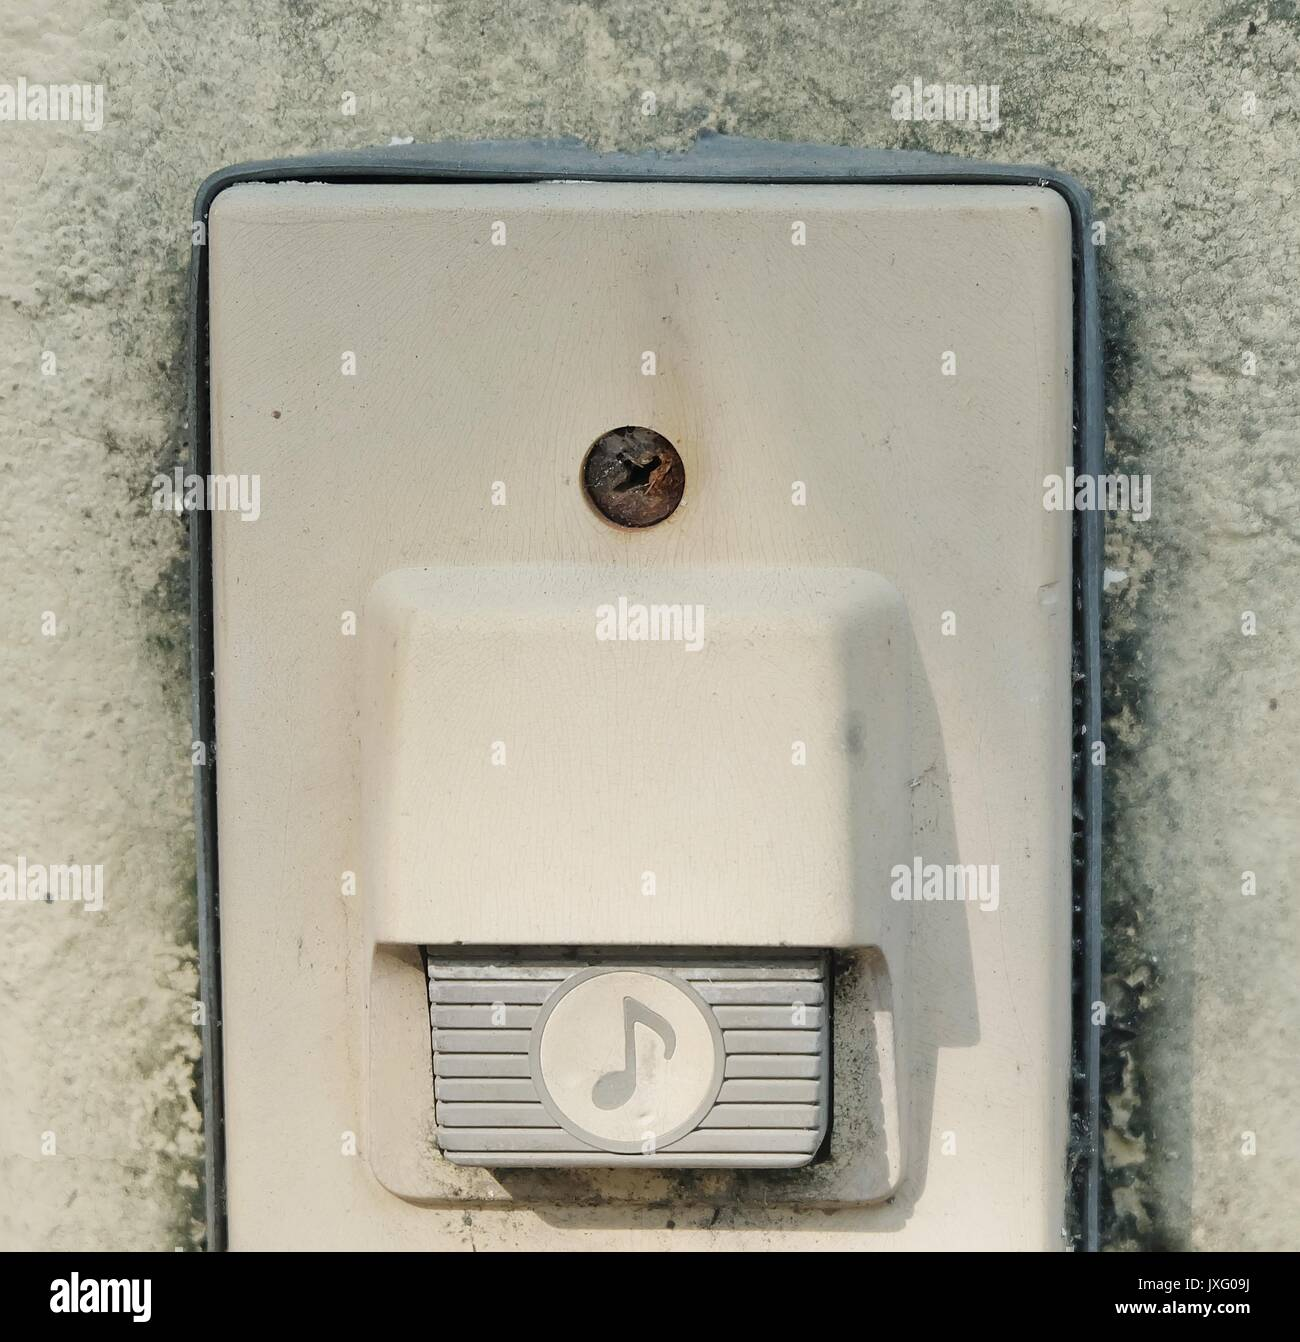 Eletronic Old Doorbell Chime Or Home Buzzer On The Wall Ringing Or Stock Photo Alamy